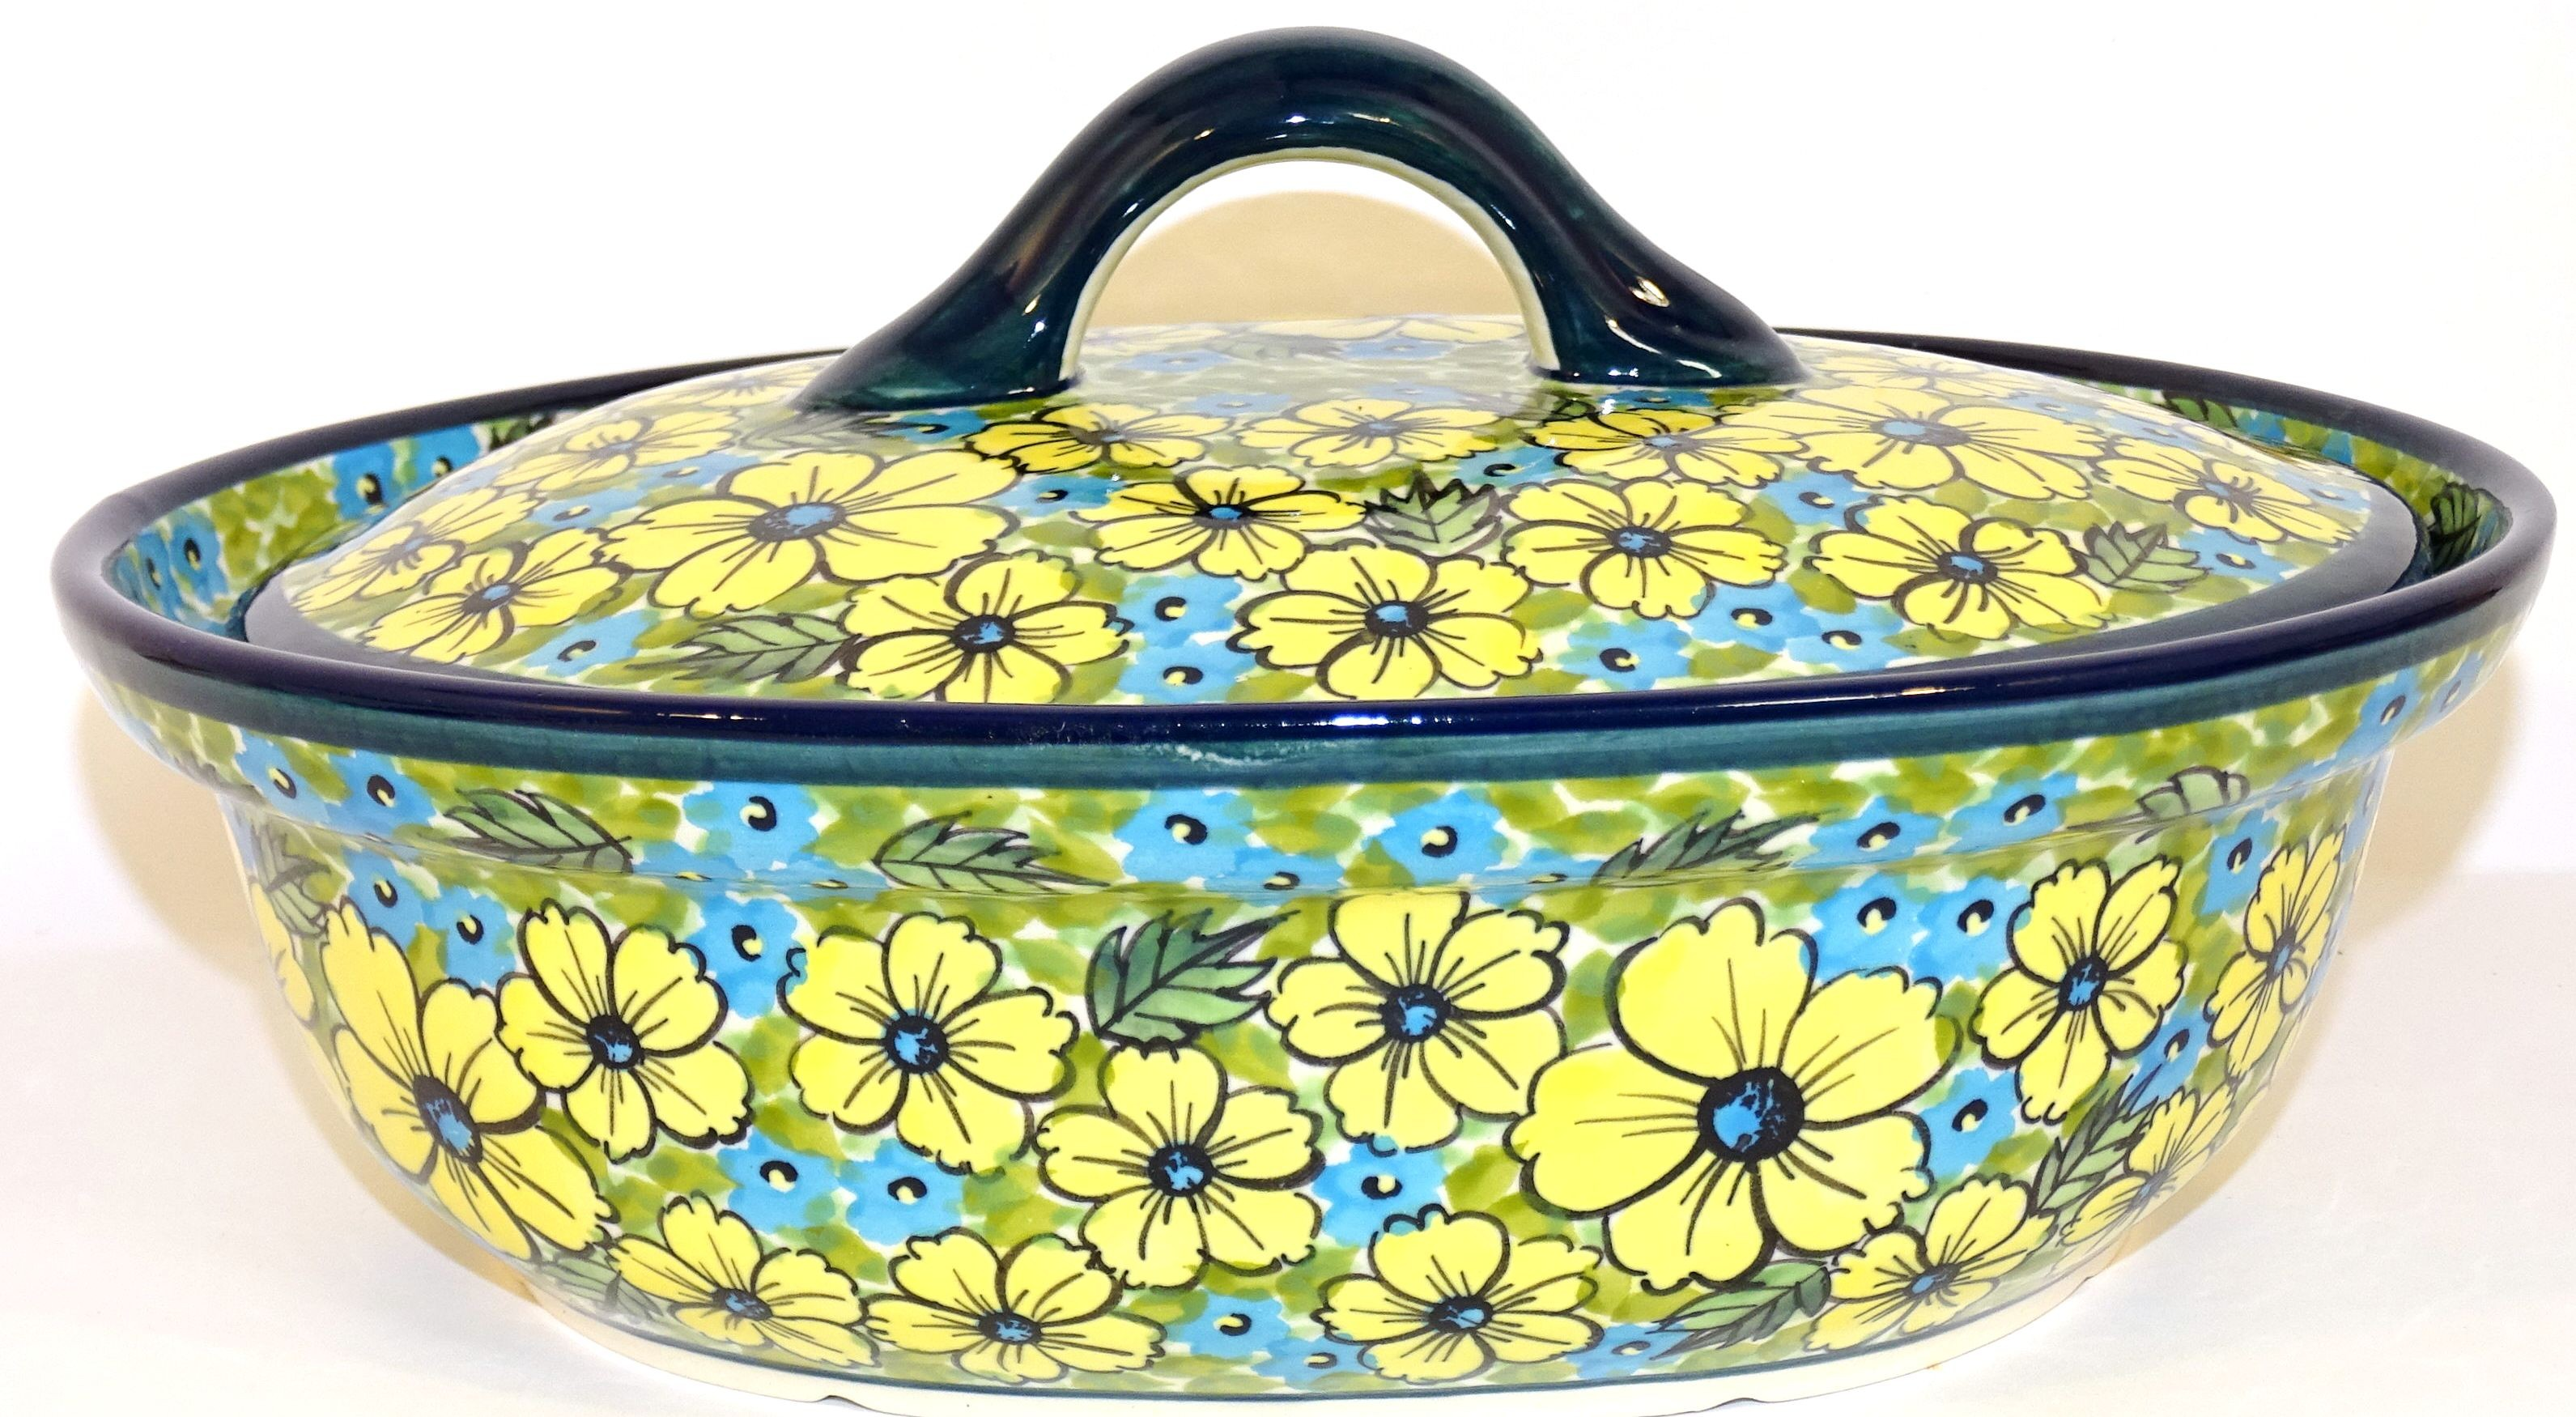 Pottery Avenue 1.5L CITRINE Covered Casserole Dish | UNIKAT